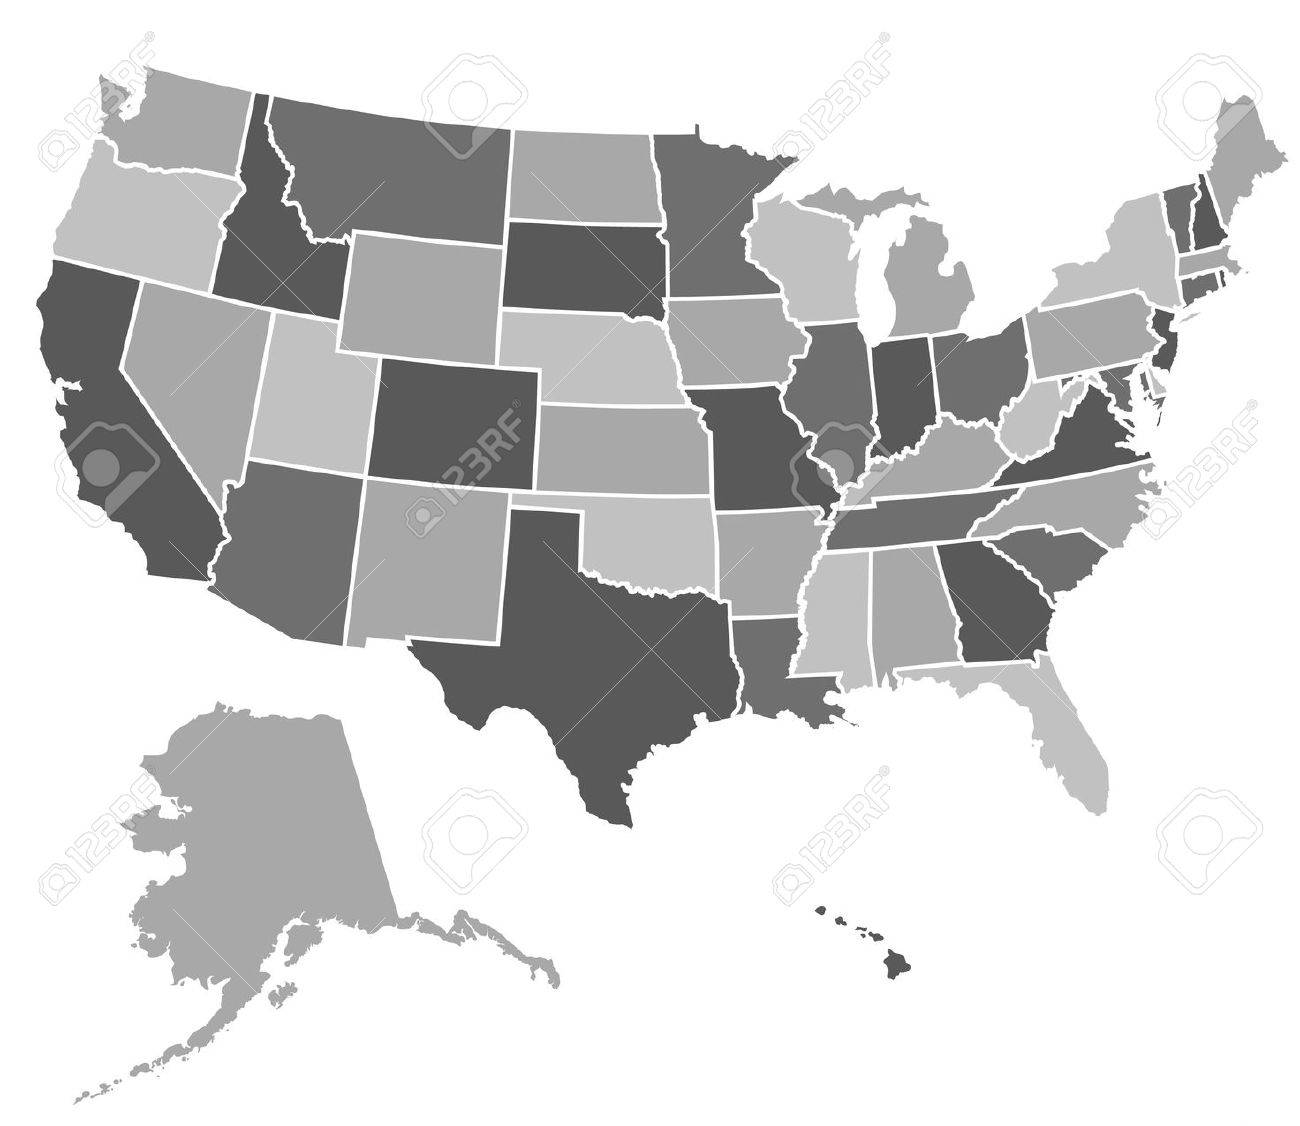 map of the united states of america royalty free cliparts vectors